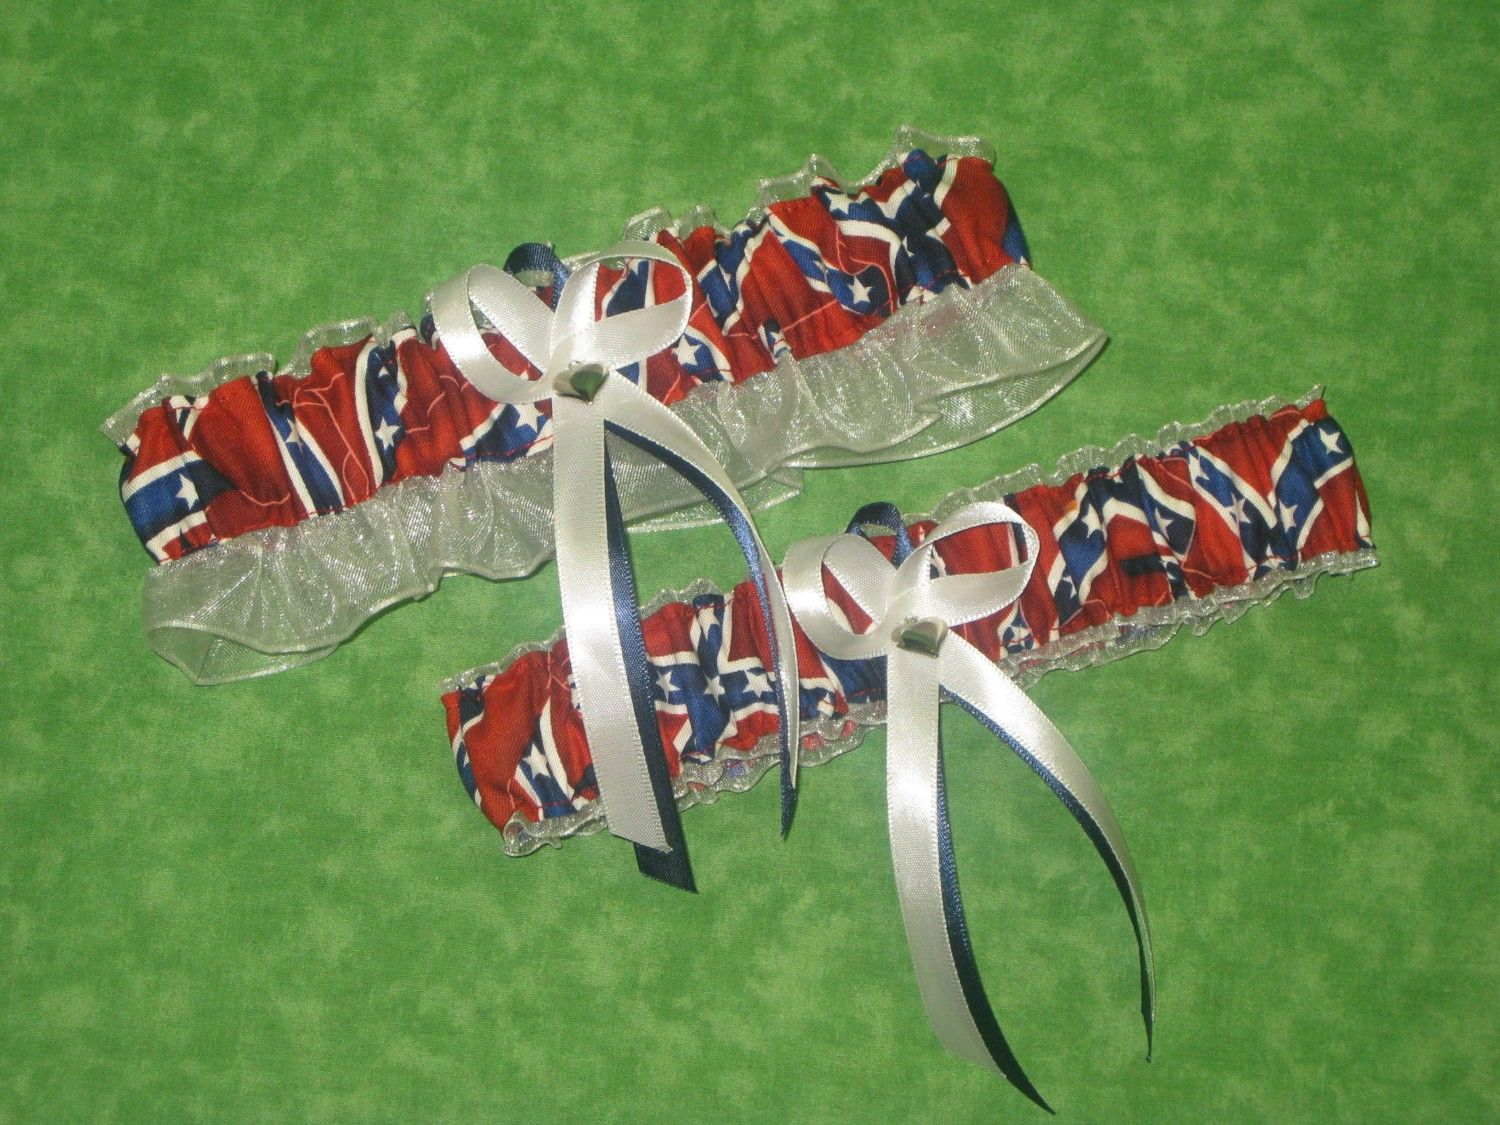 Confederate Flag Themed Garter Belts???  And We're Makin. Kid Wedding Rings. Wedding Band Inside Engagement Rings. Steel Wedding Rings. Baby Boy Rings. Architectural Engagement Rings. Chrome Mens Wedding Rings. Joint Engagement Engagement Rings. Black Stone Rings